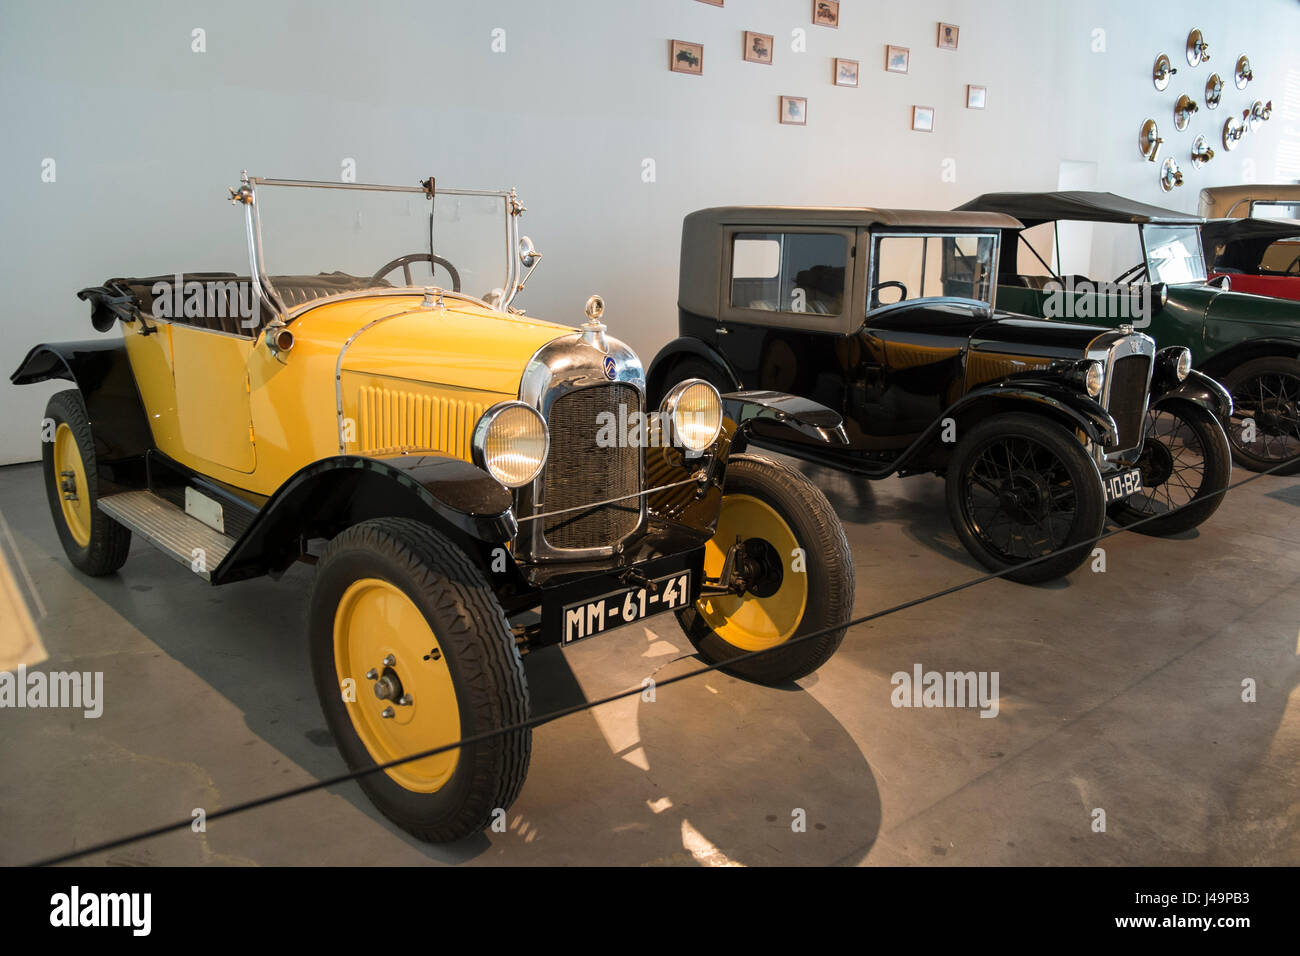 1922 Citroën Type C. Automobile museum of Málaga, Andalusia, Spain - Stock Image